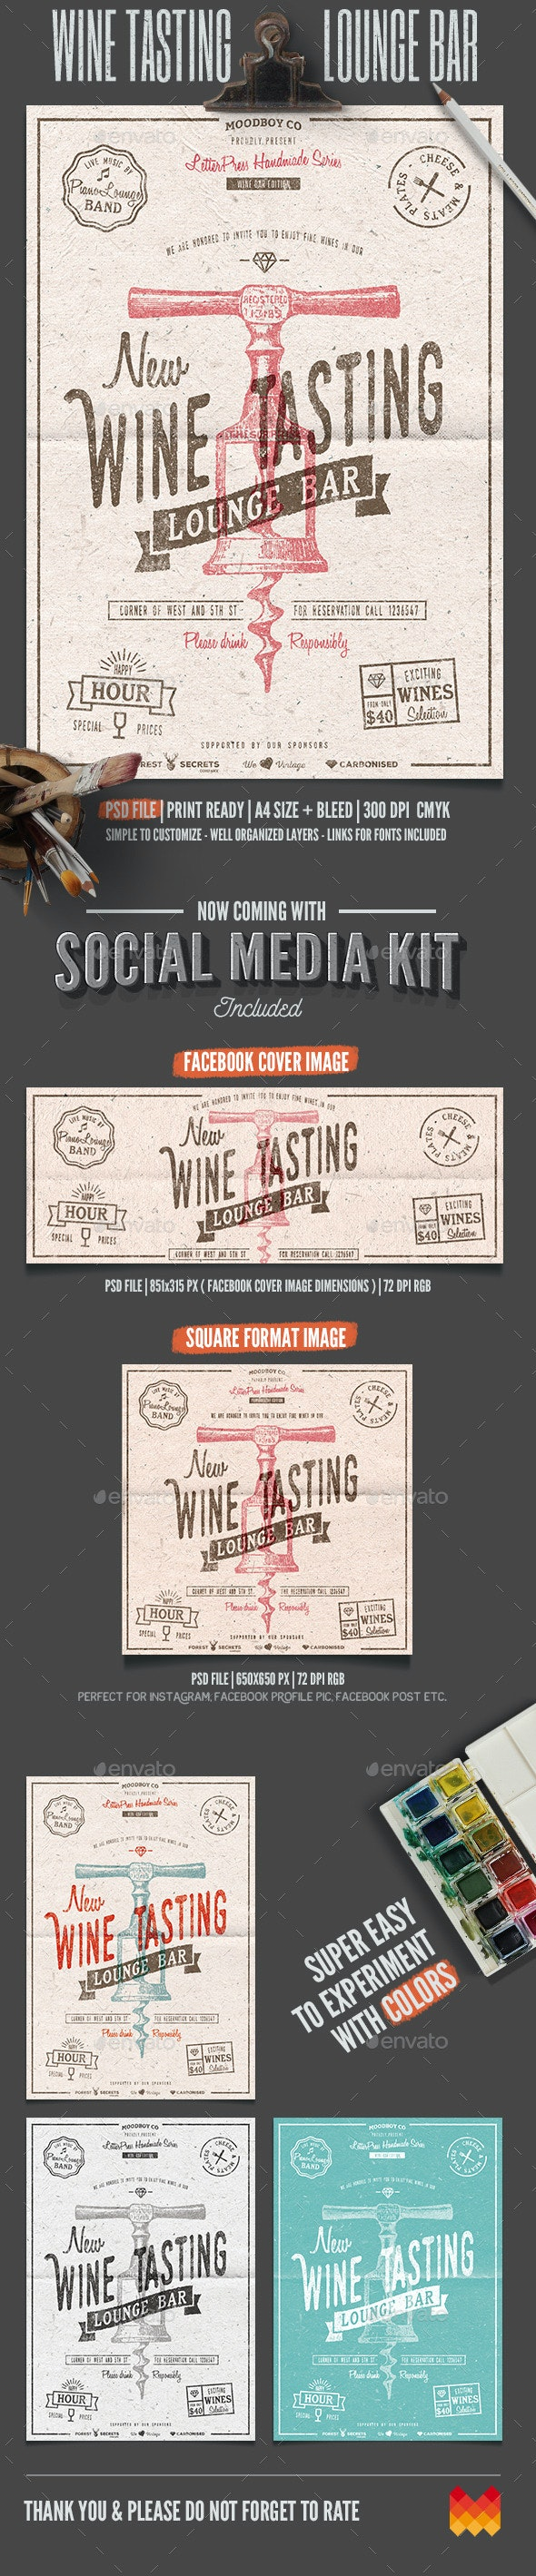 Wine Tasting Lounge Flyer/Poster - Flyers Print Templates